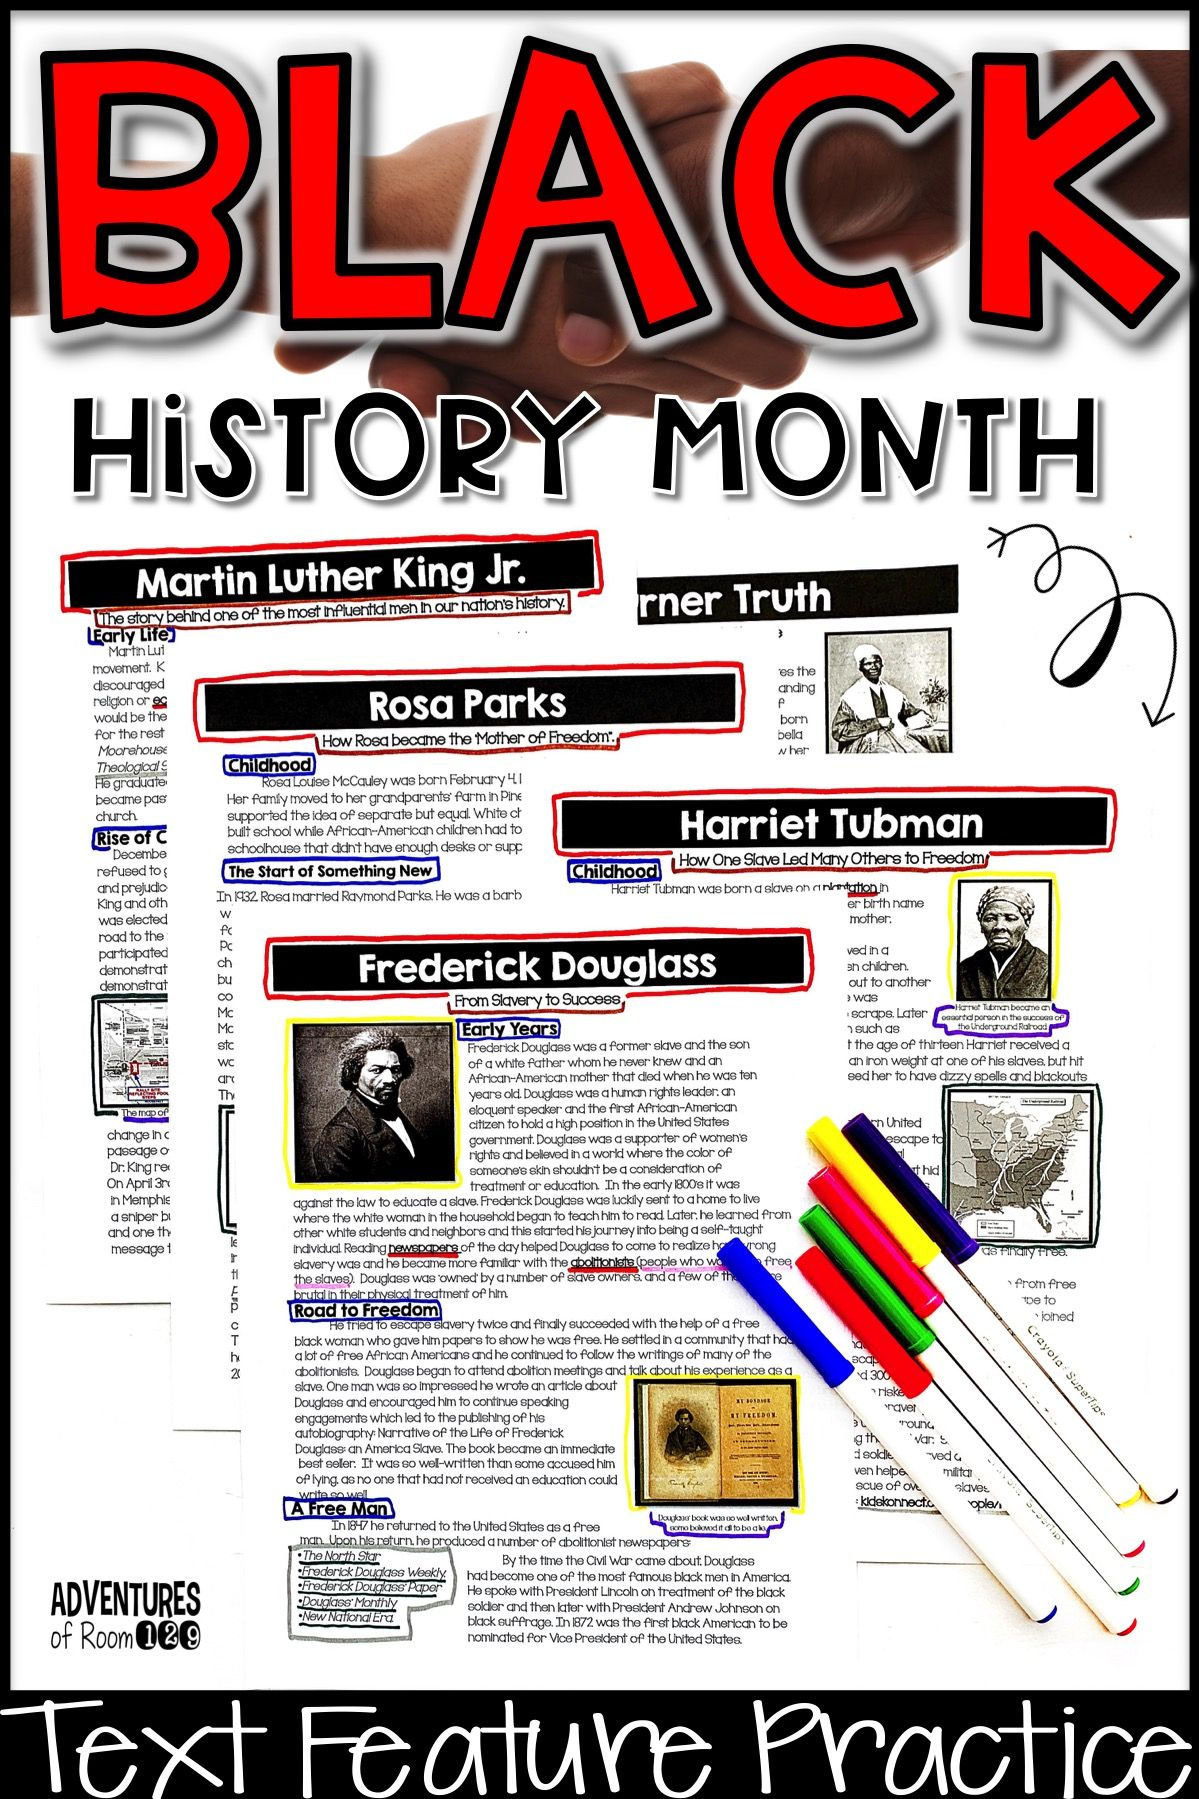 Black History Month Text Features